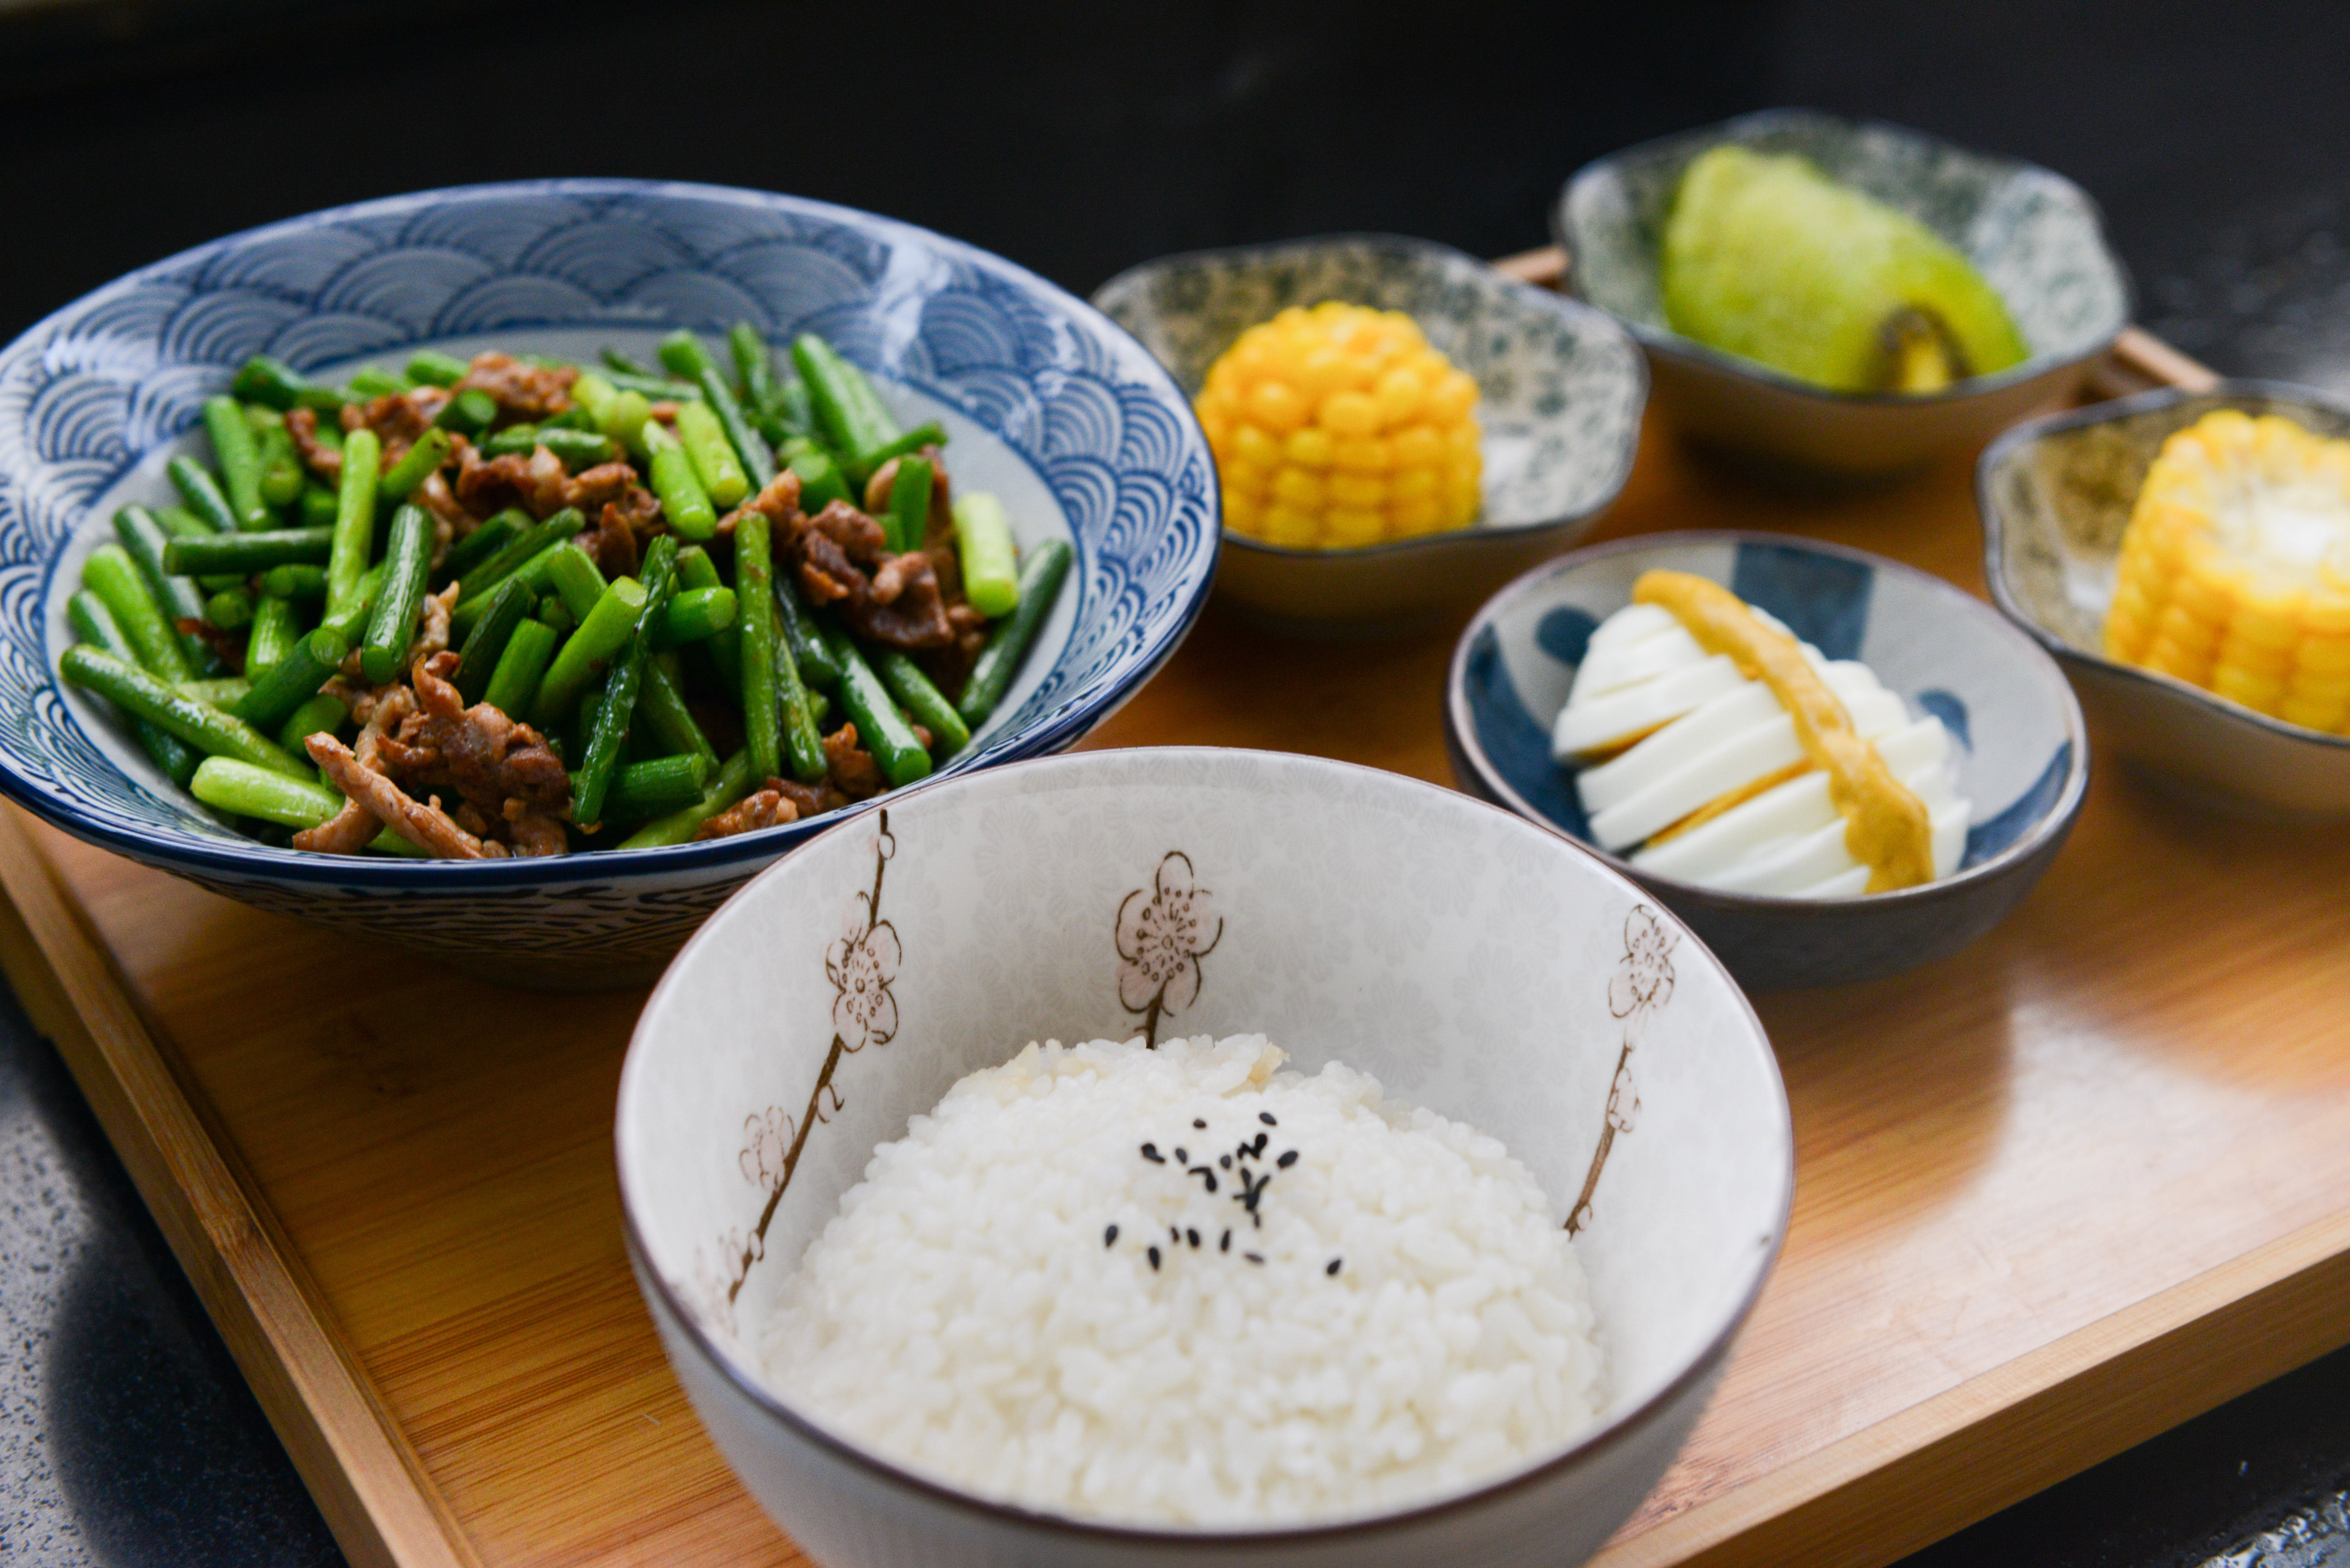 Rice on Bowl, Sliced-egg, Corn, and Vegetable on Table